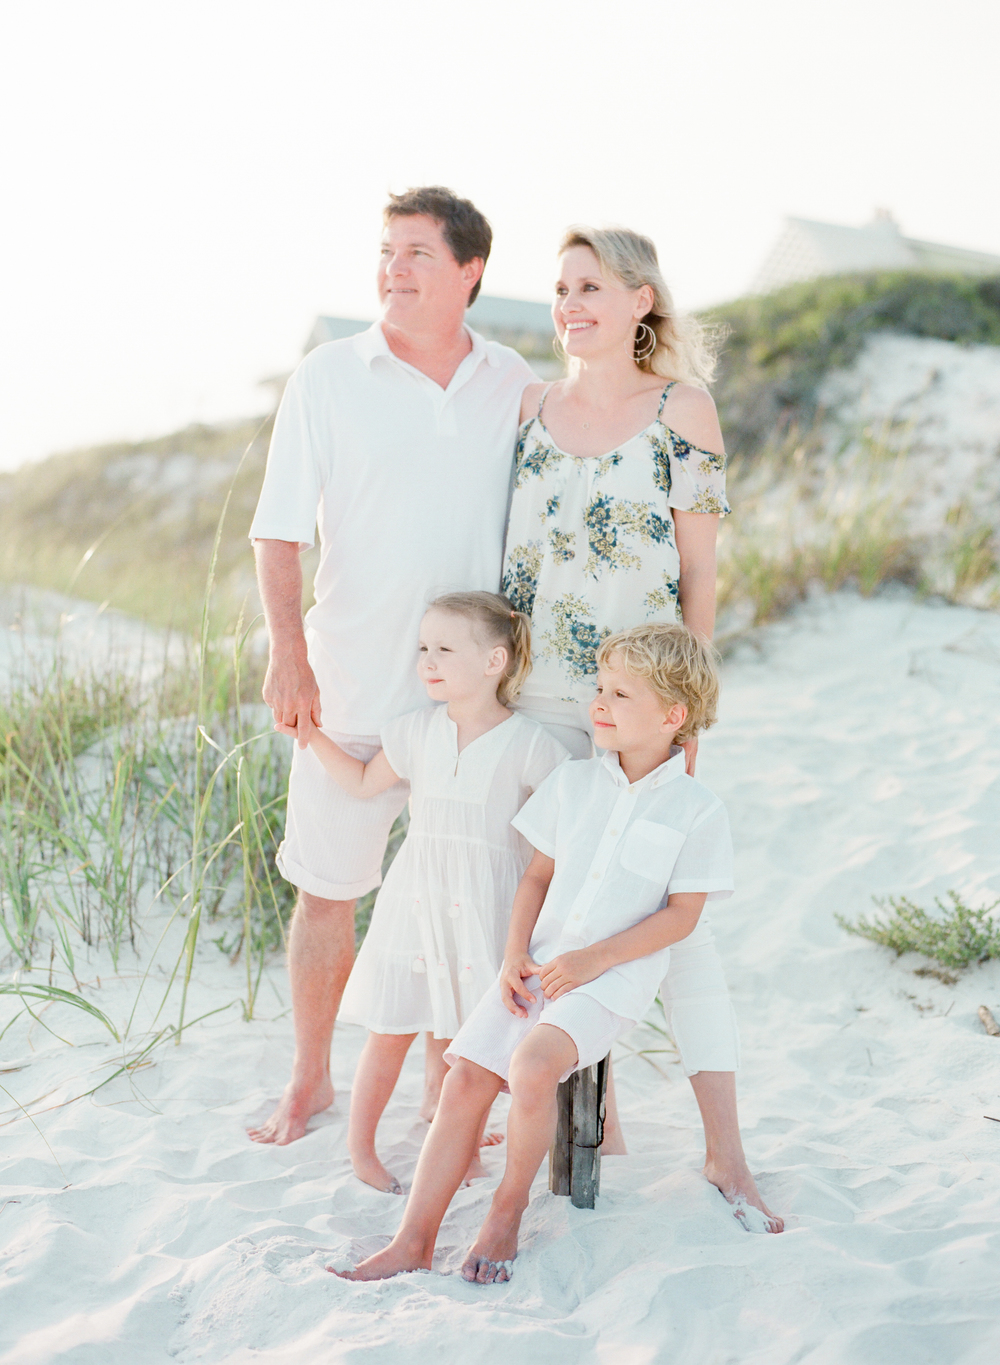 30a family beach pictures | Kaylie B. Poplin Photography | Watercolor, Florida family and wedding photographer